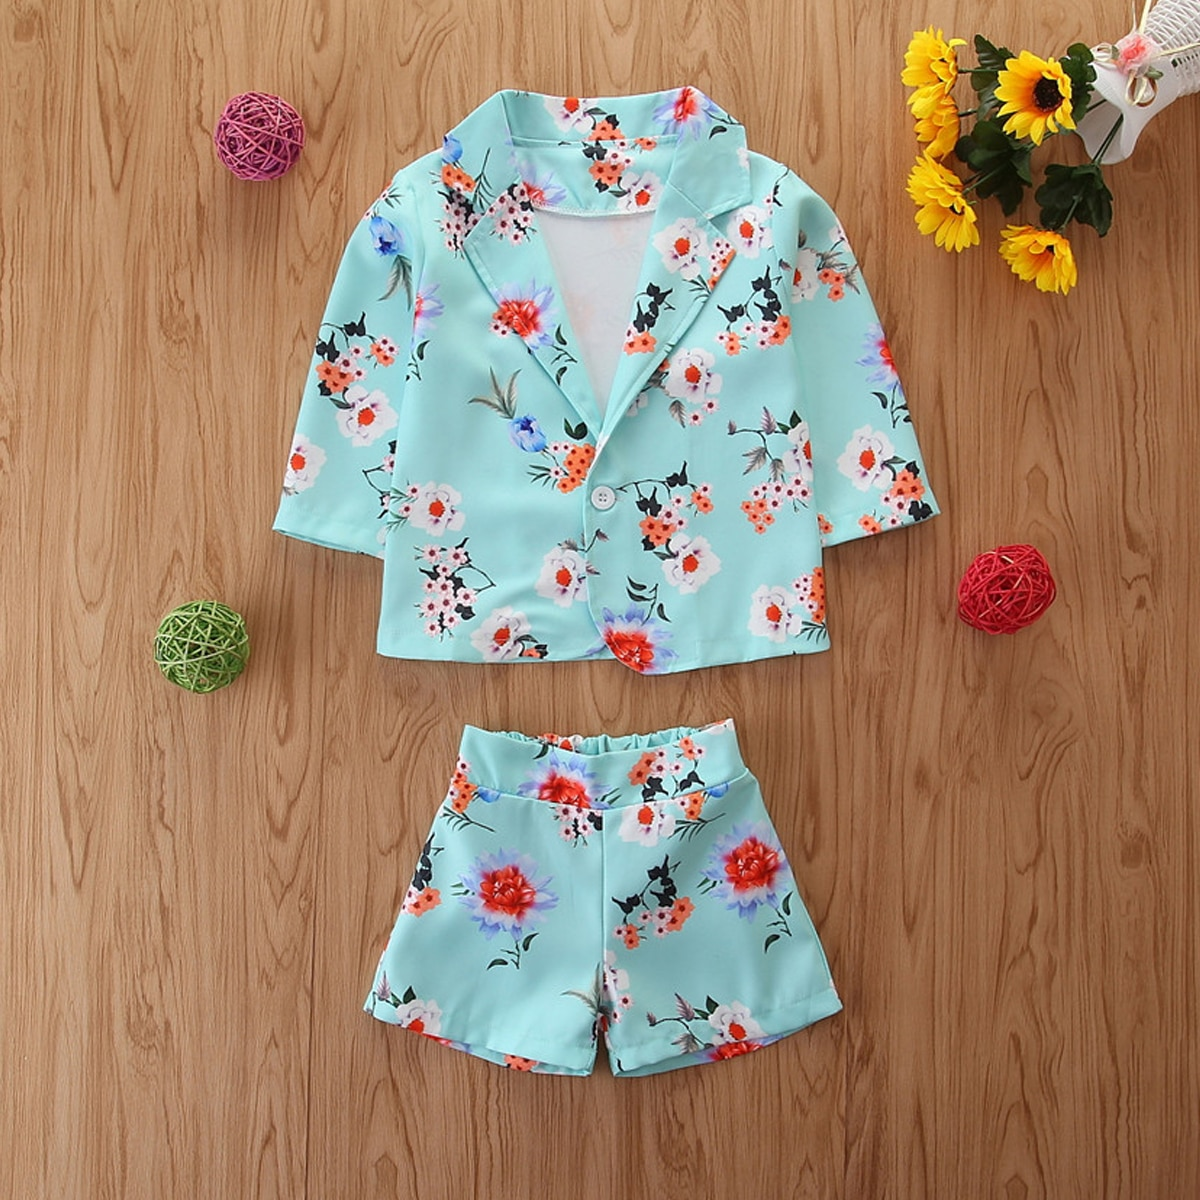 Toddler Girls Floral Print Button Front Blouse & Shorts